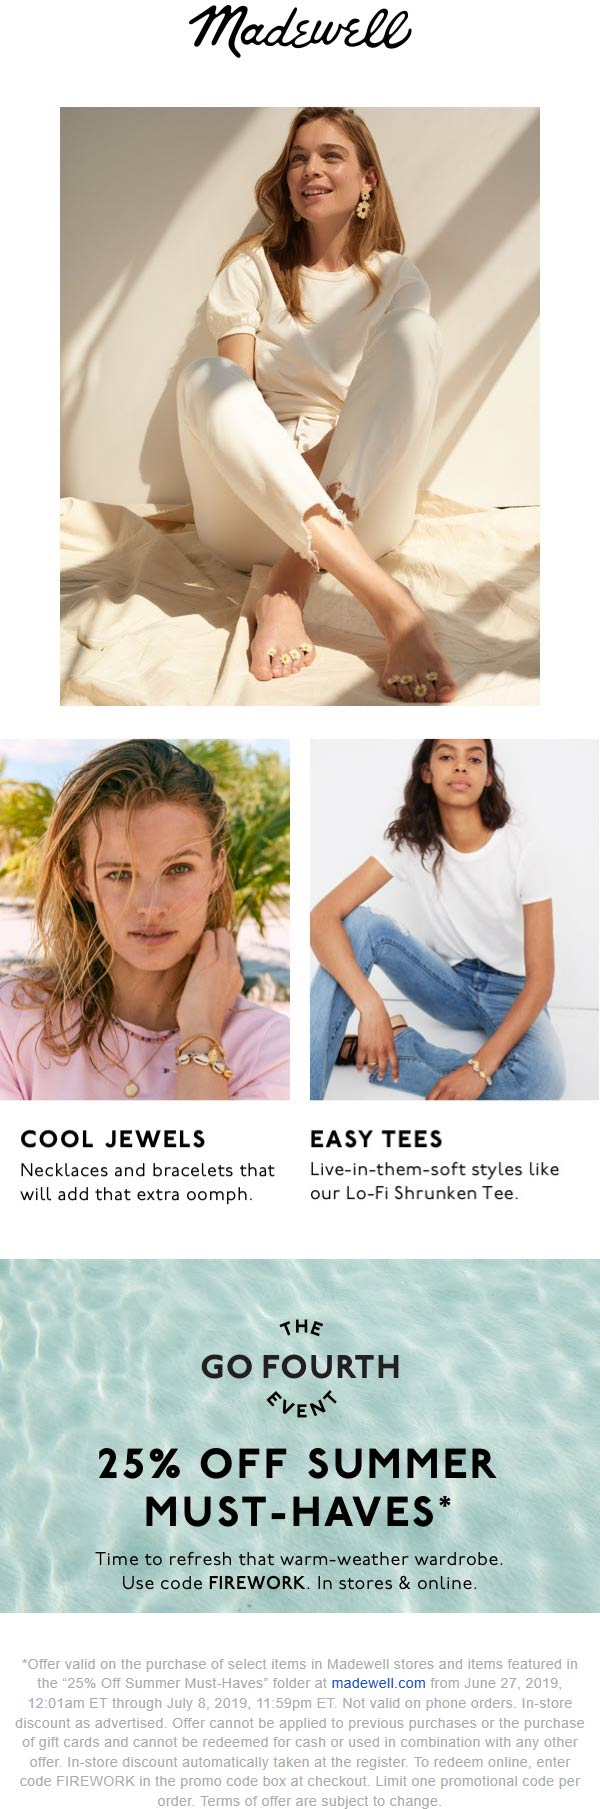 Madewell Coupon November 2019 25% off summer at Madewell, or online via promo code FIREWORK